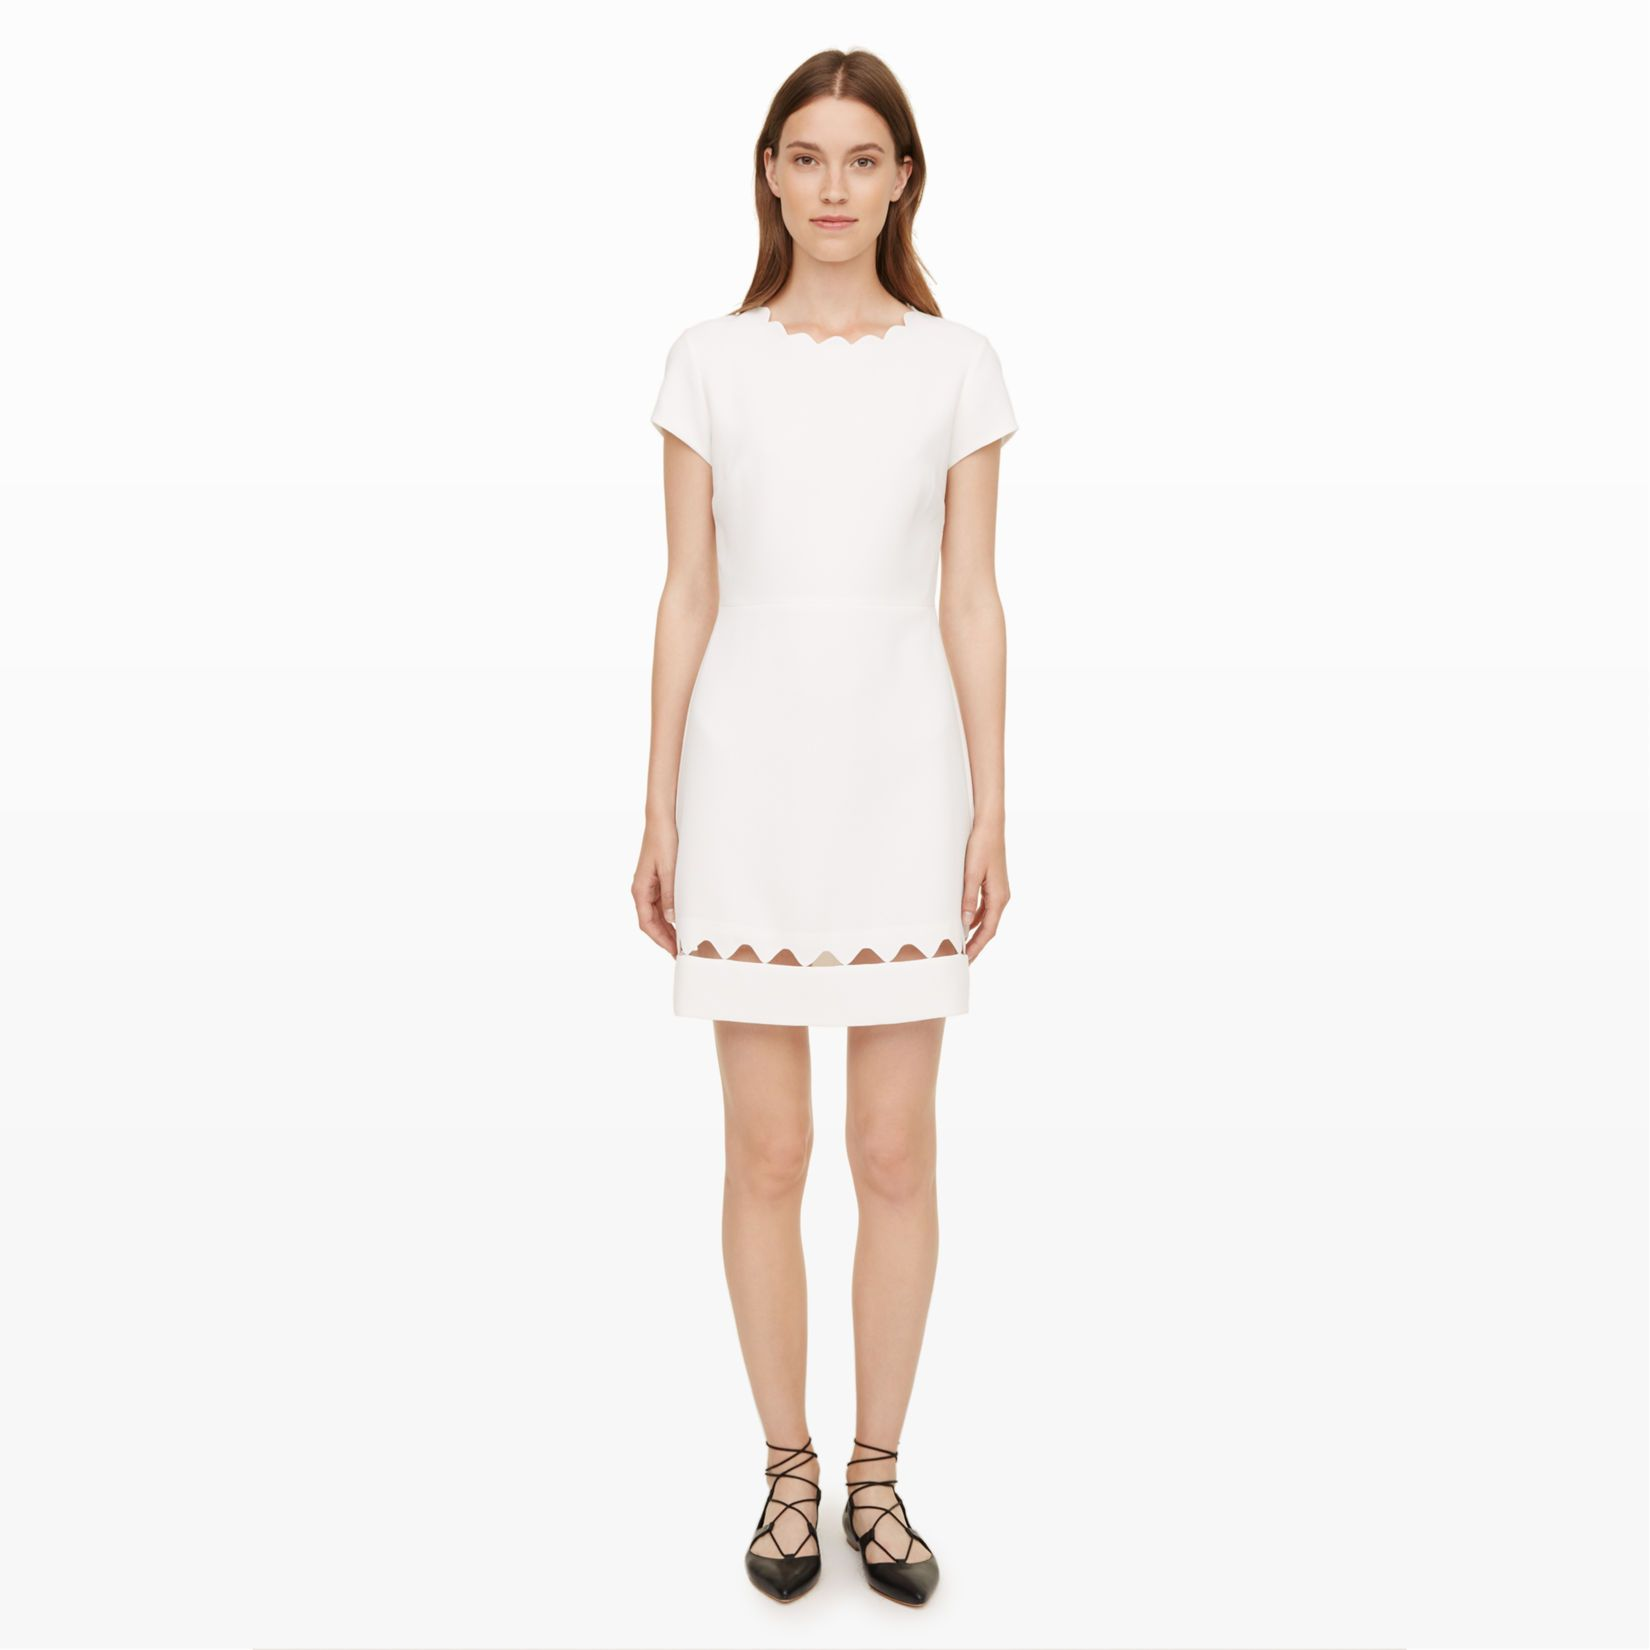 Milancey cutout dress in a subtly textured fabric with a great